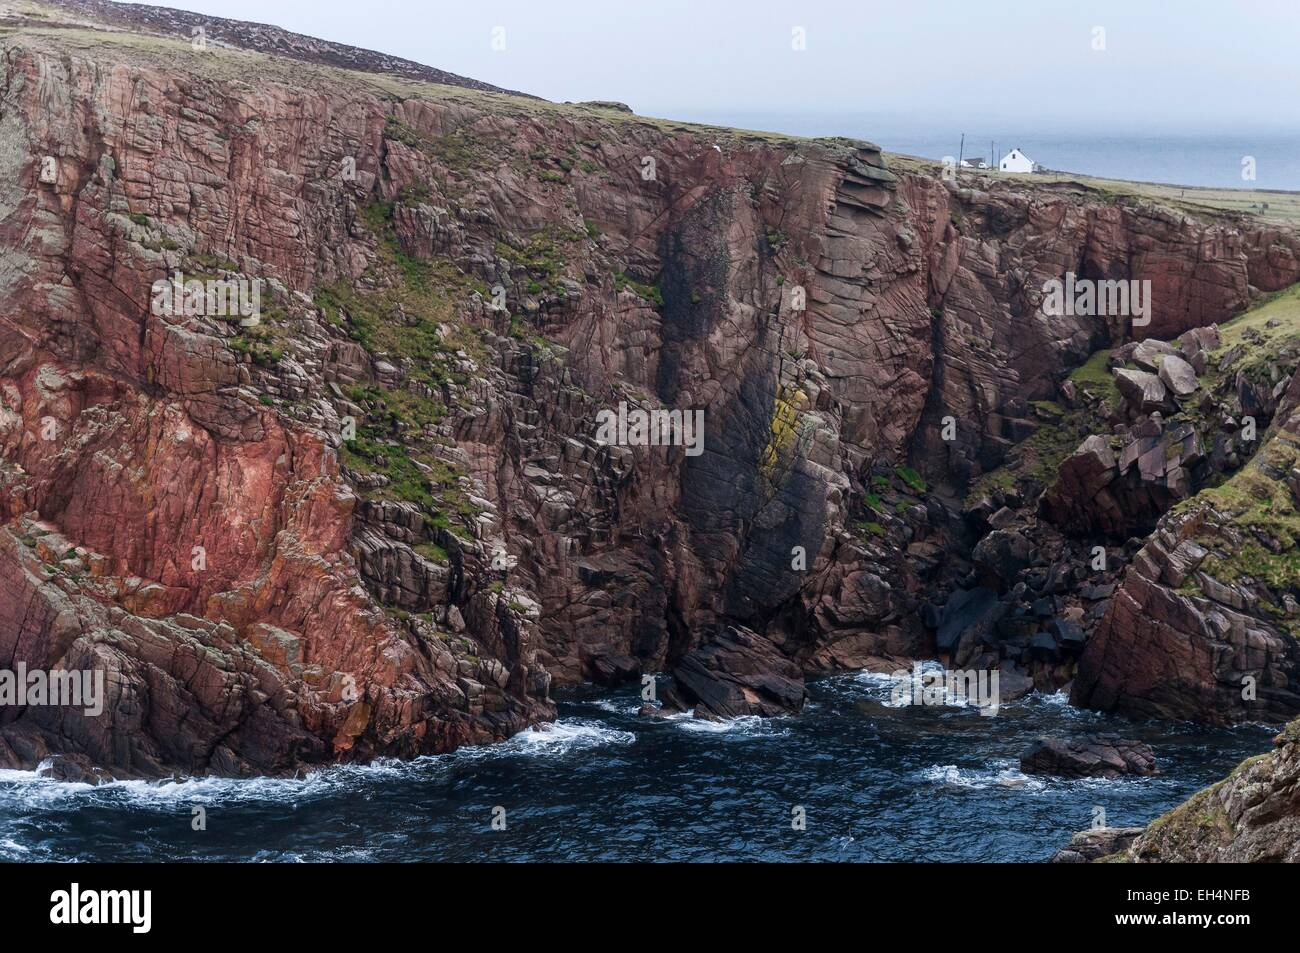 Ireland, Ulster, Donegal County, island of Tory, cliffs and East Town on east side island - Stock Image